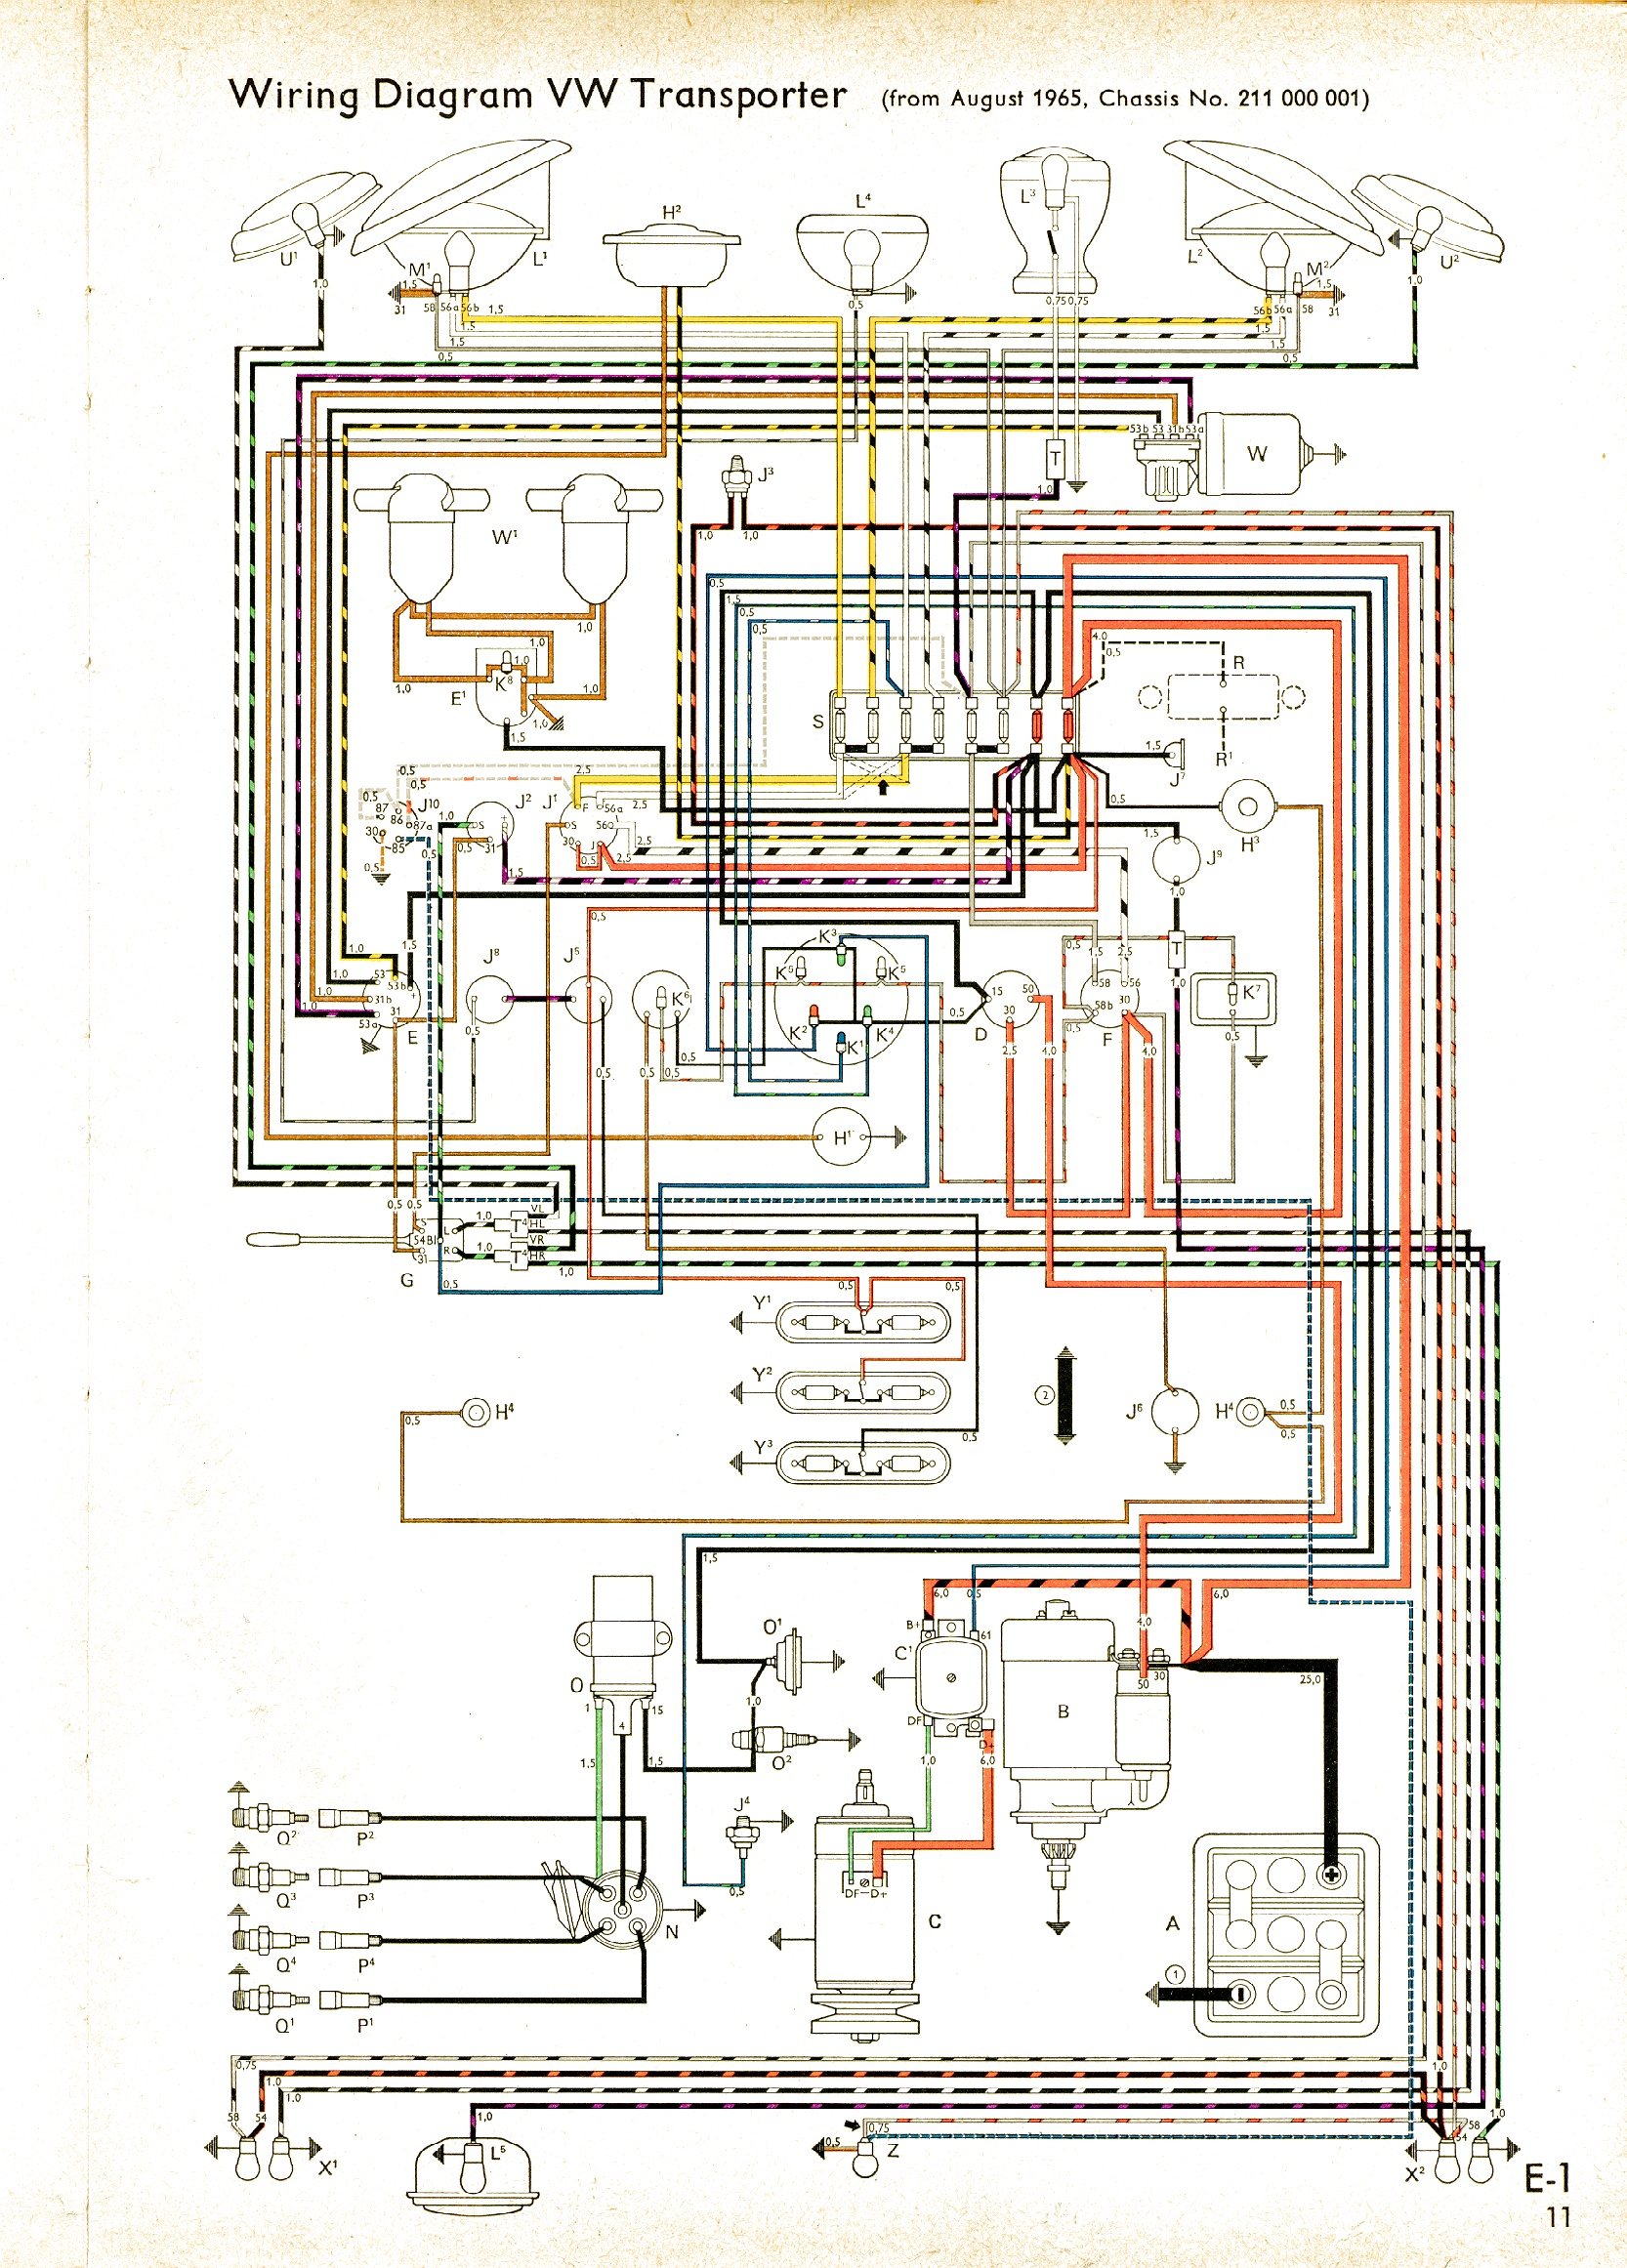 1971 Vw Beetle Wiring Diagram Reveolution Of Bug Ignition Diagrams Rh Volkspower Nl Volkswagen Super